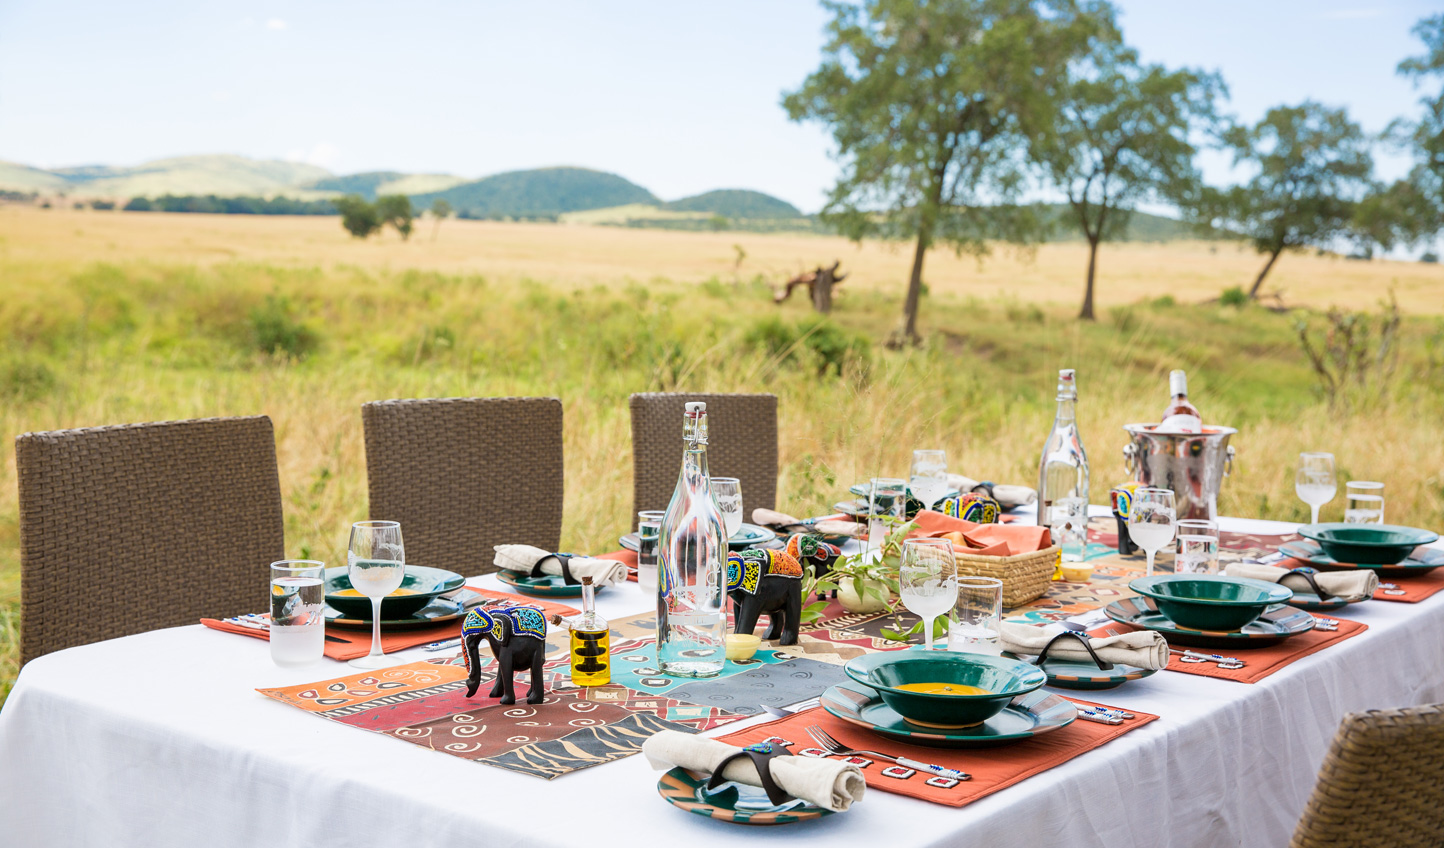 Dine in the bush